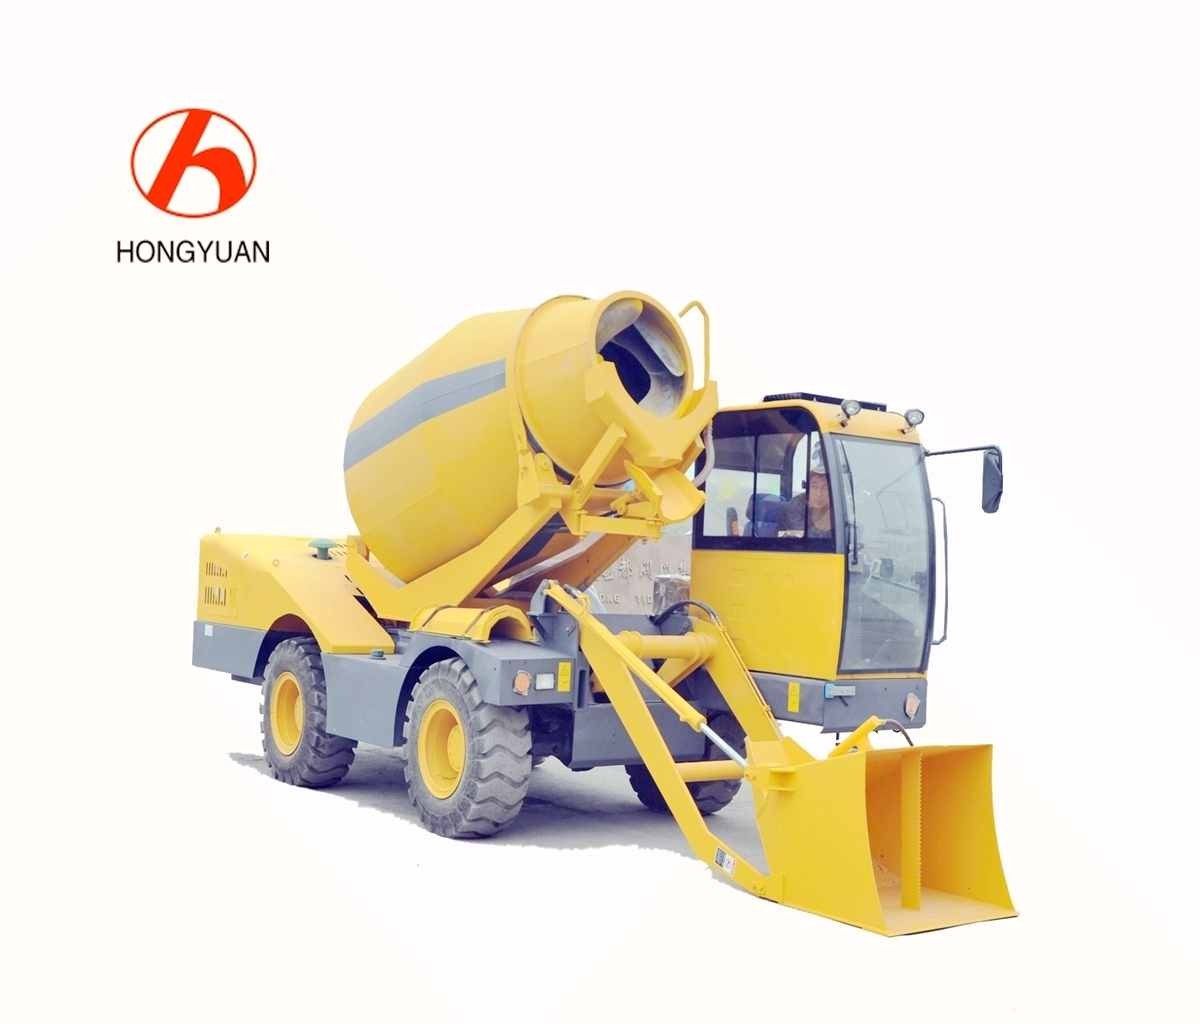 Sales Factory Supply 3.5cbm Slef Loading Concrete Mixer Truck With 270 Degree, Buy Factory Supply 3.5cbm Slef Loading Concrete Mixer Truck With 270 Degree, Factory Supply 3.5cbm Slef Loading Concrete Mixer Truck With 270 Degree Factory, Factory Supply 3.5cbm Slef Loading Concrete Mixer Truck With 270 Degree Brands